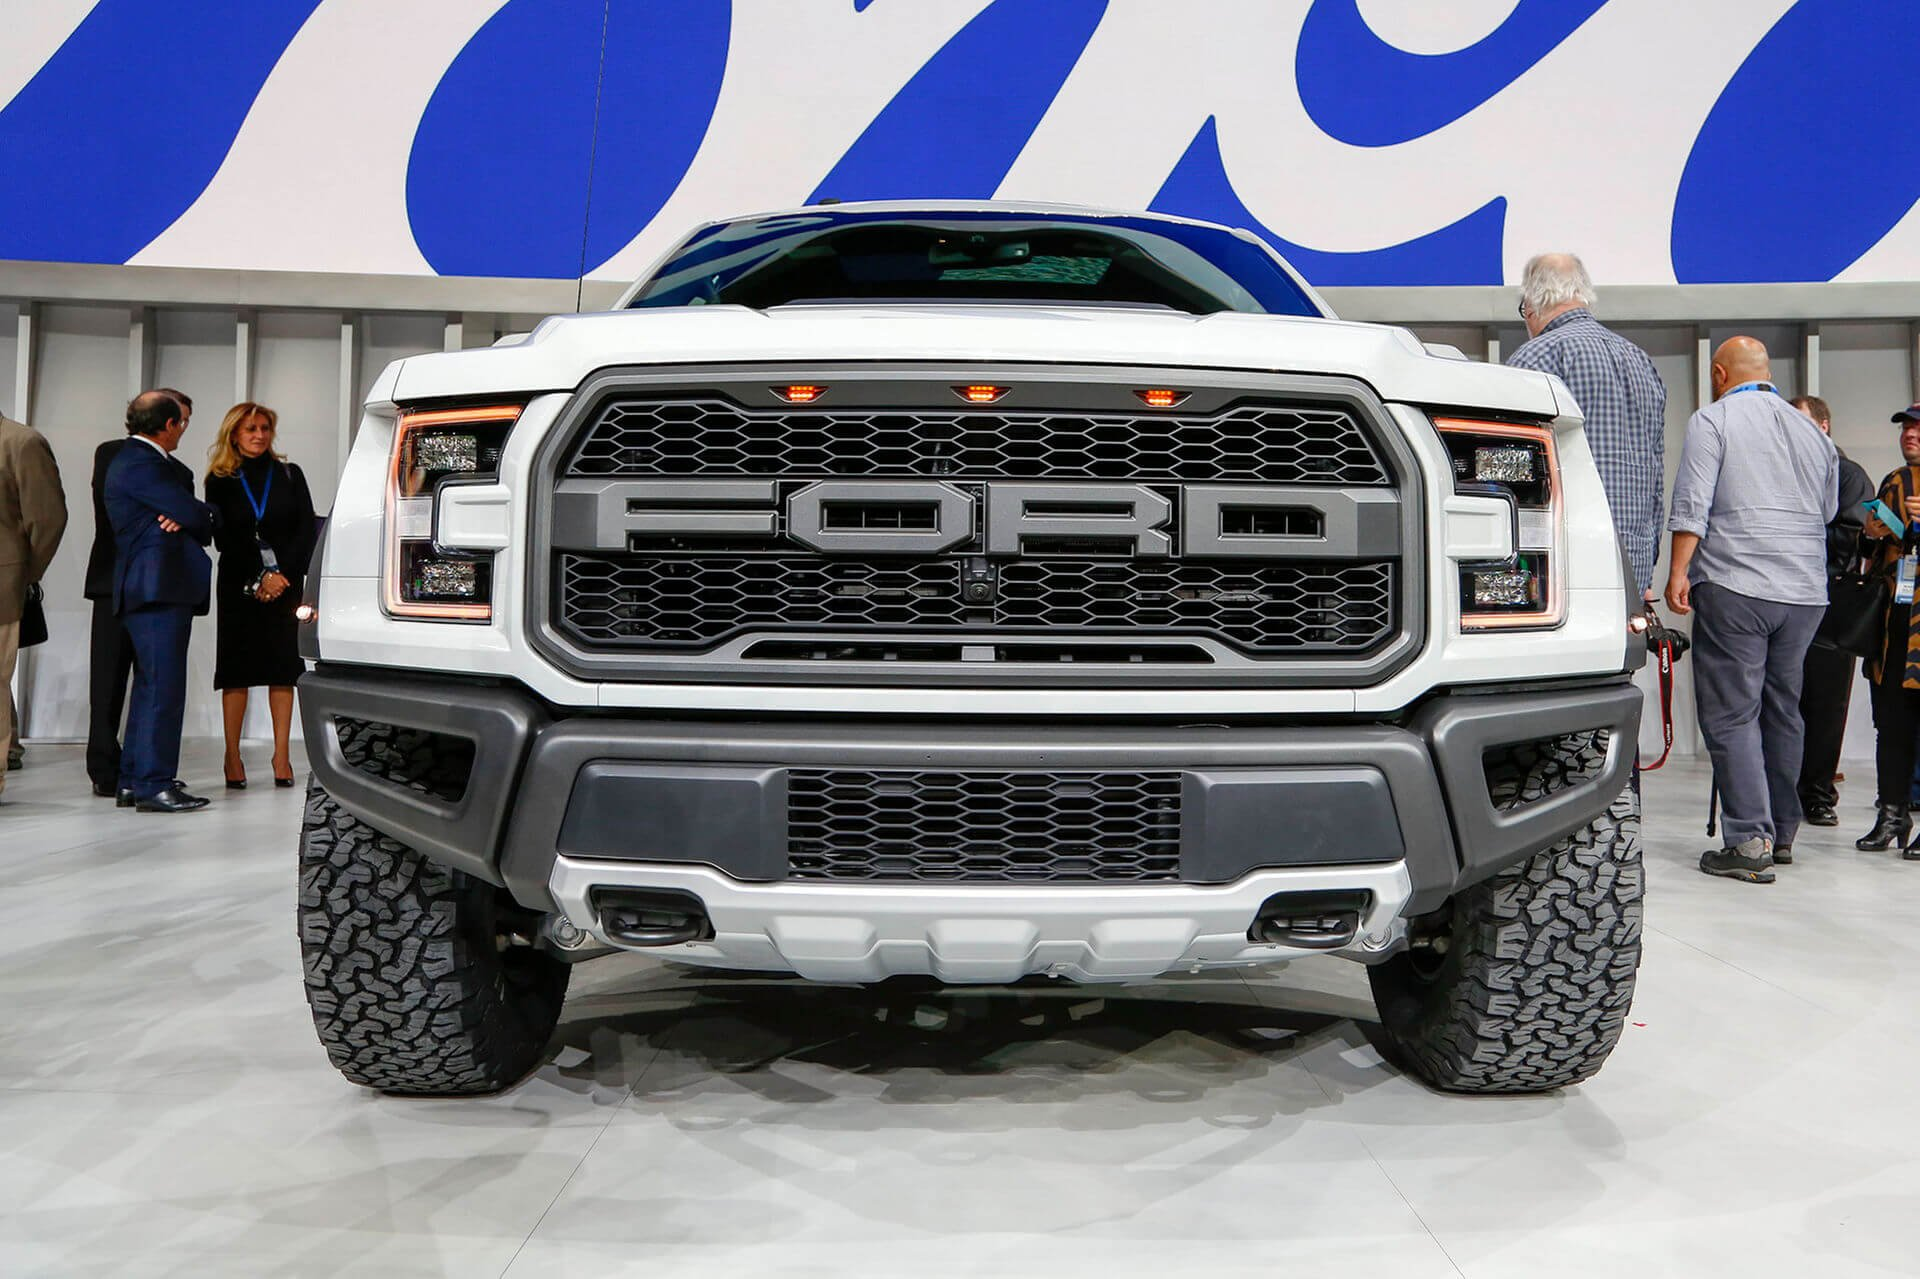 2017-Ford-F-150-Raptor-SuperCrew-front-end-021